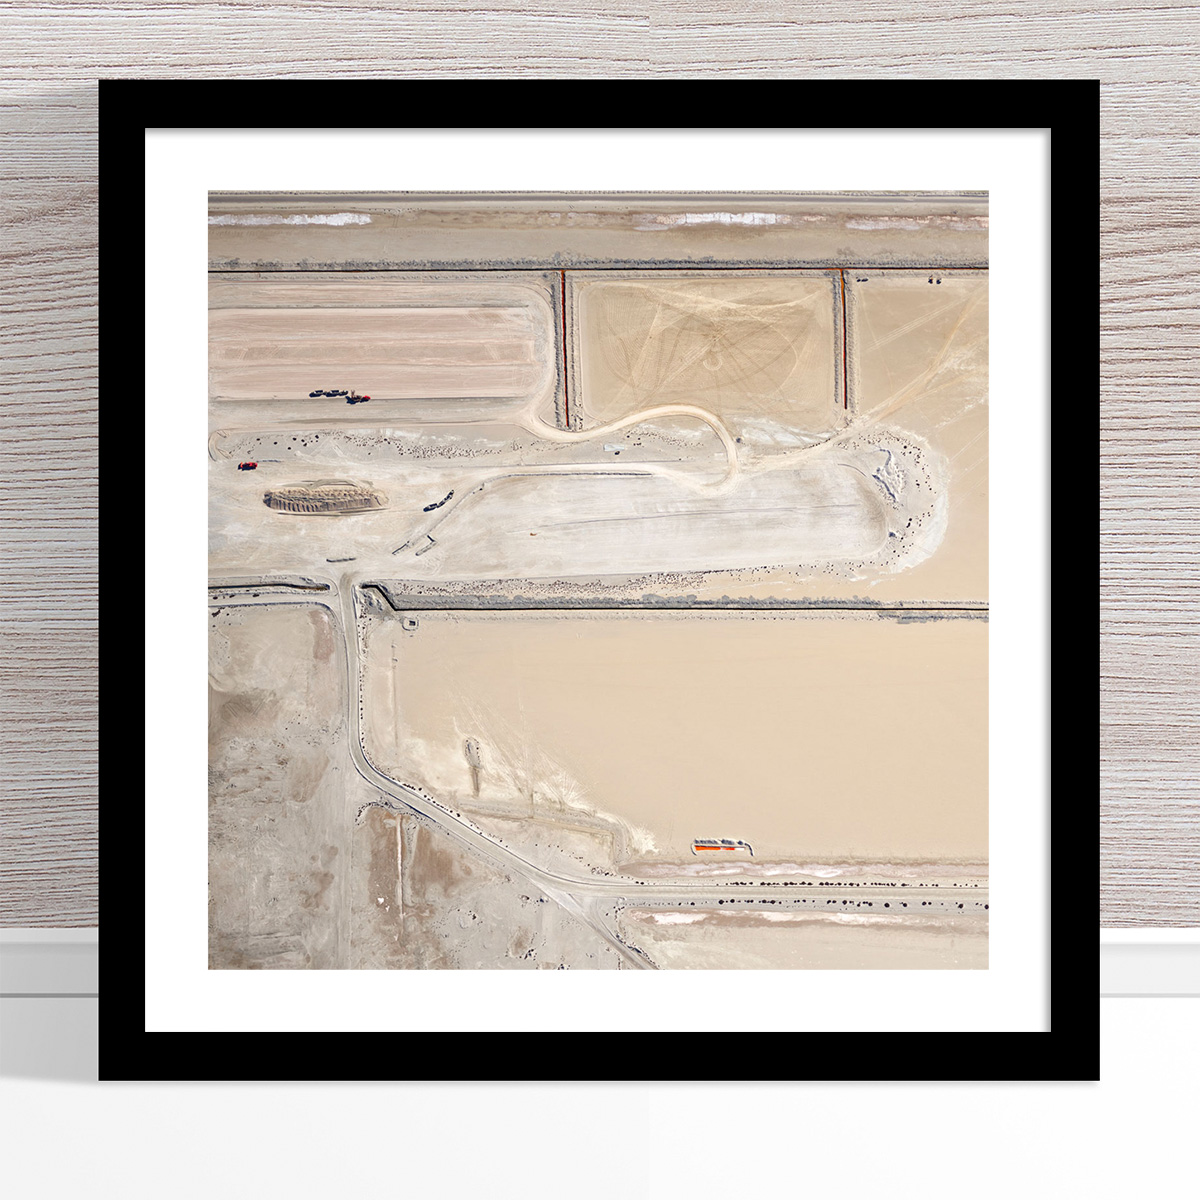 Chris Saunders - 'Aerial Salt 008' Black Frame